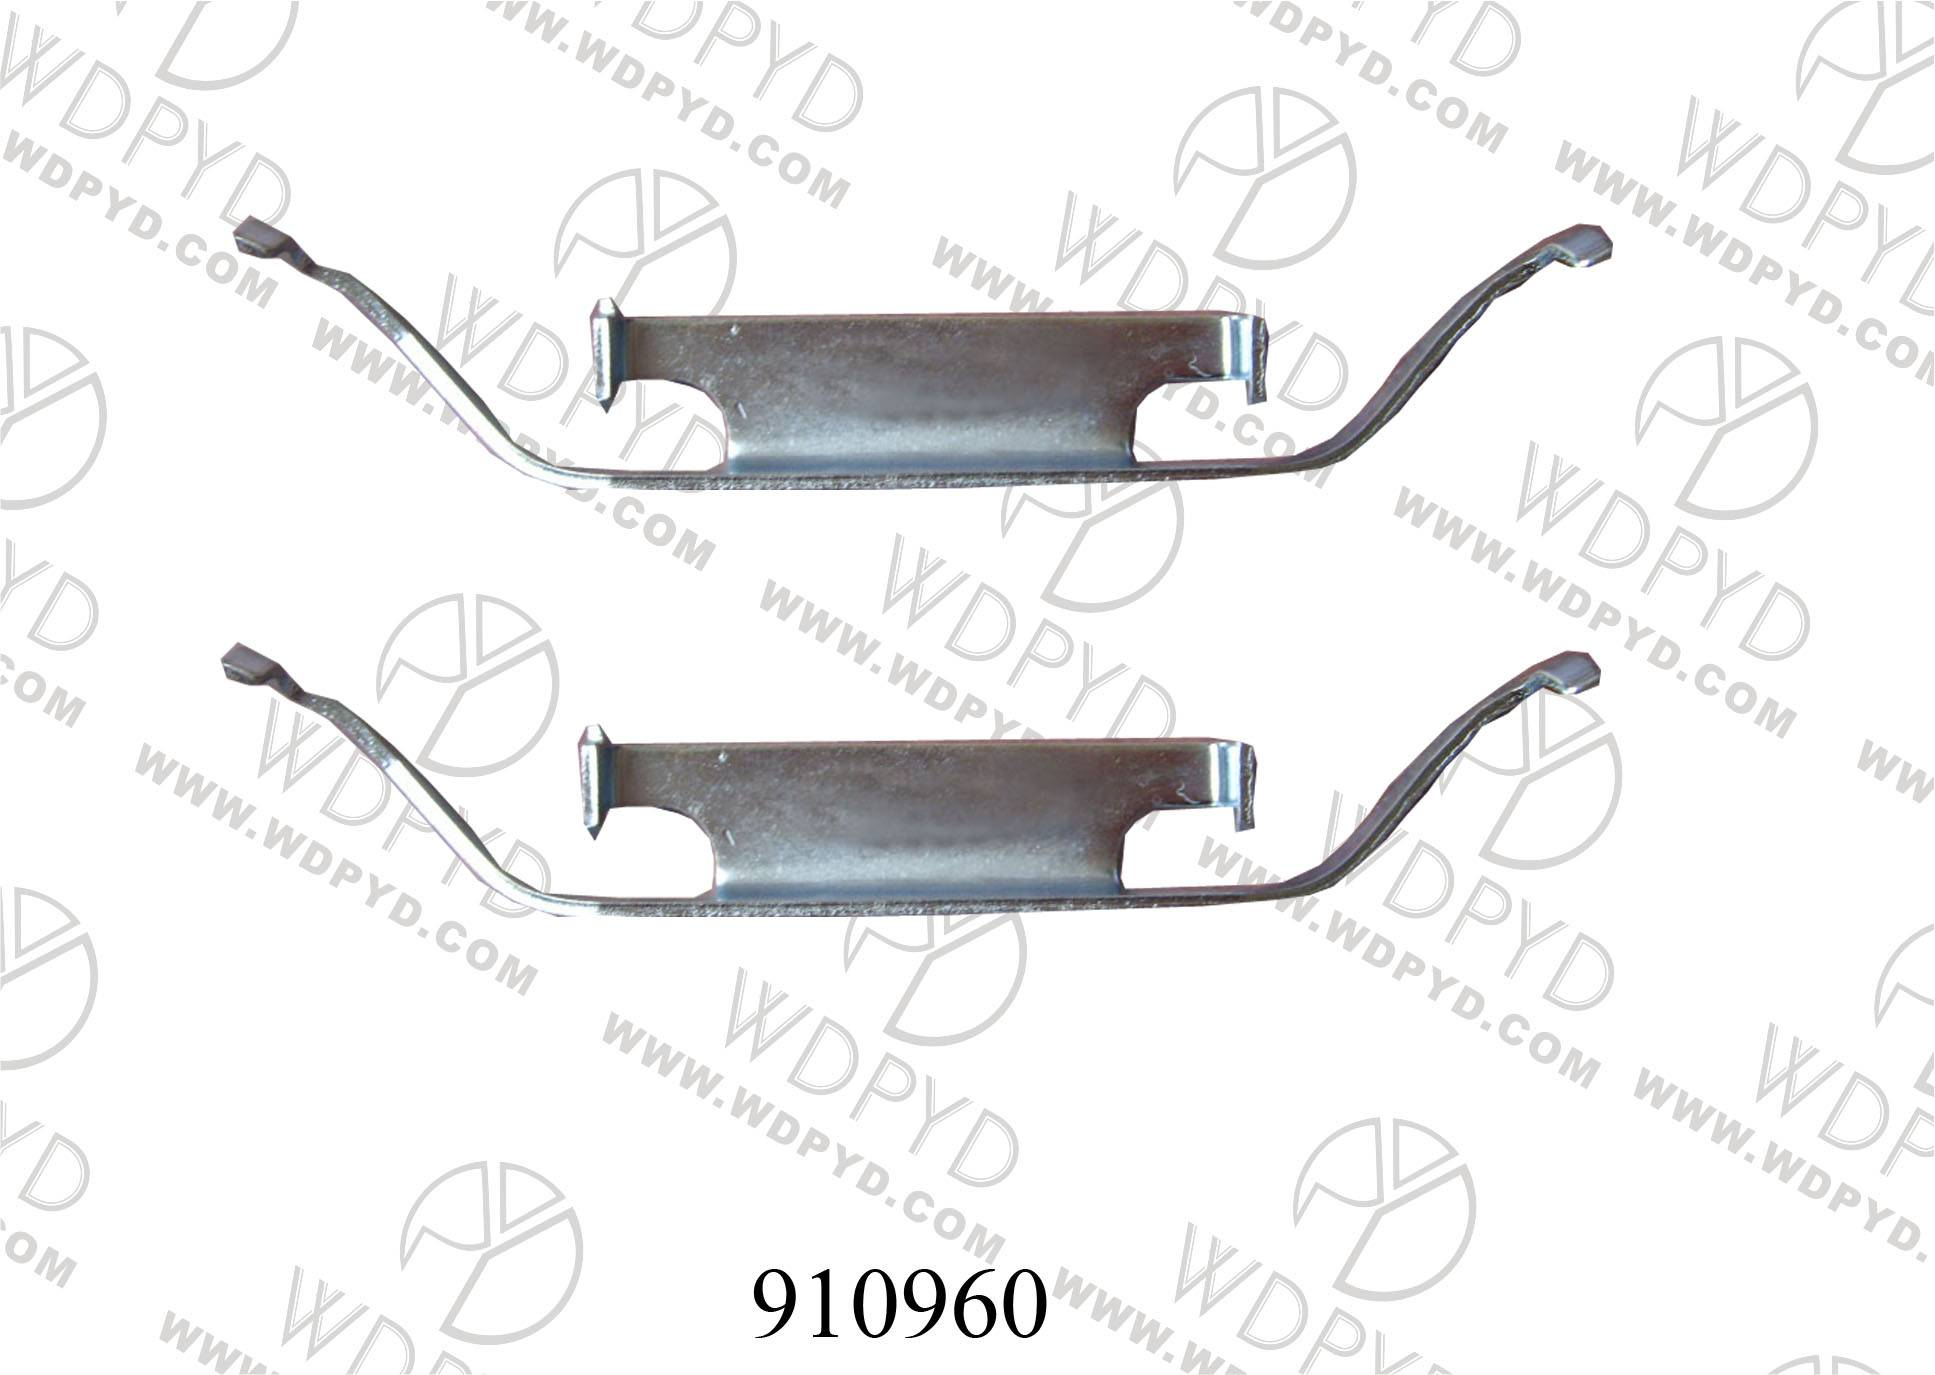 WELLDE DISC BRAKE PAD CLIP 910960 FOR FRONT BMW M3 1994-1998